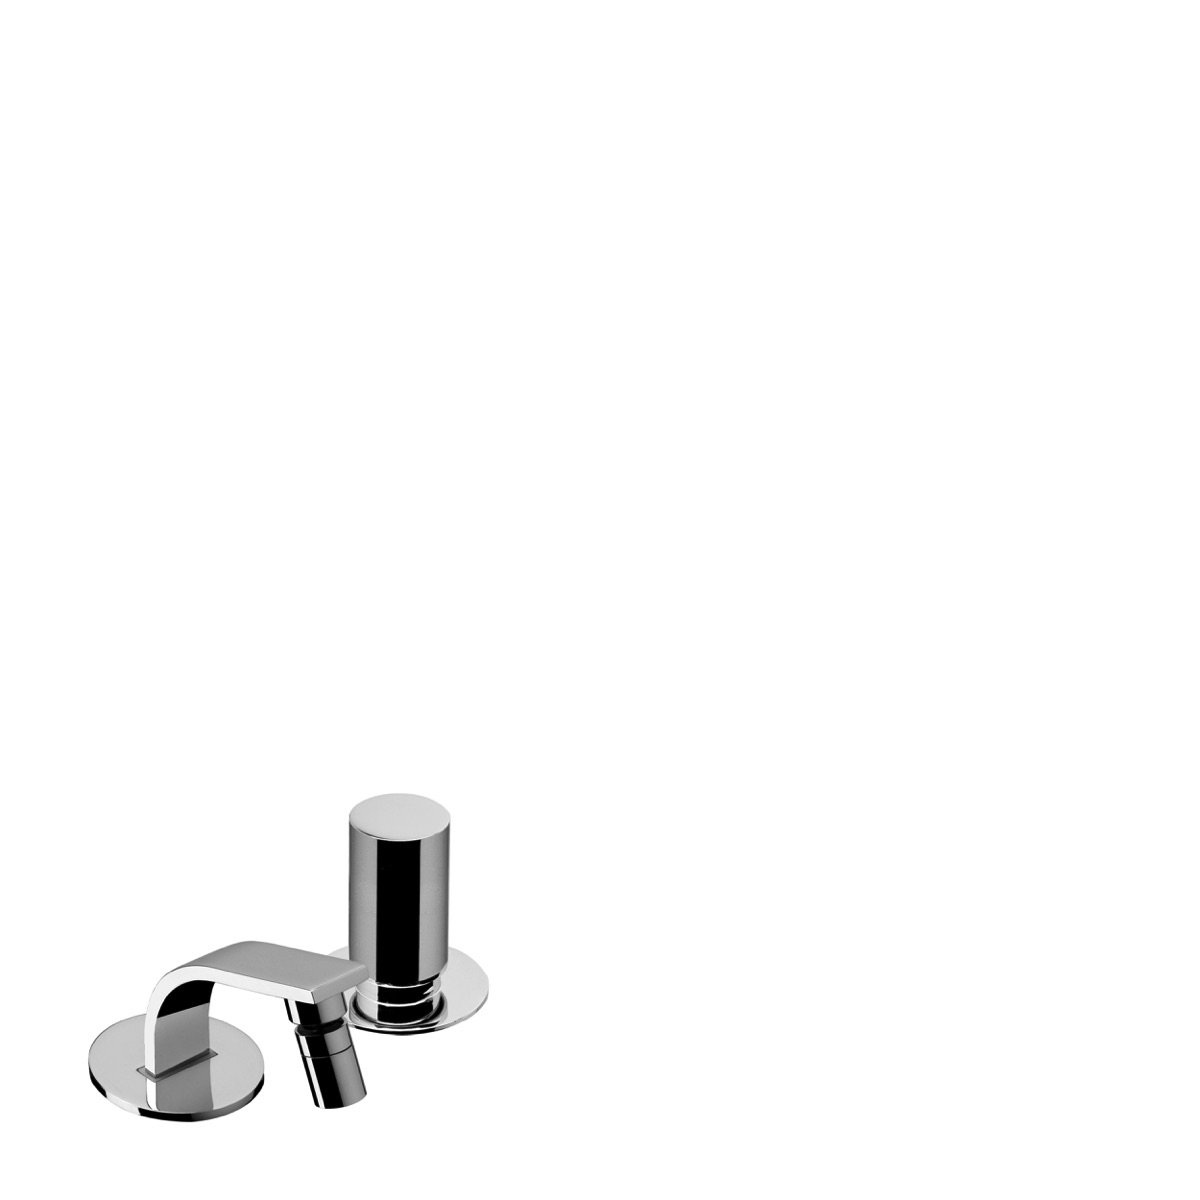 2 hole deck mounted bidet mixer with 84 mm spout with waste